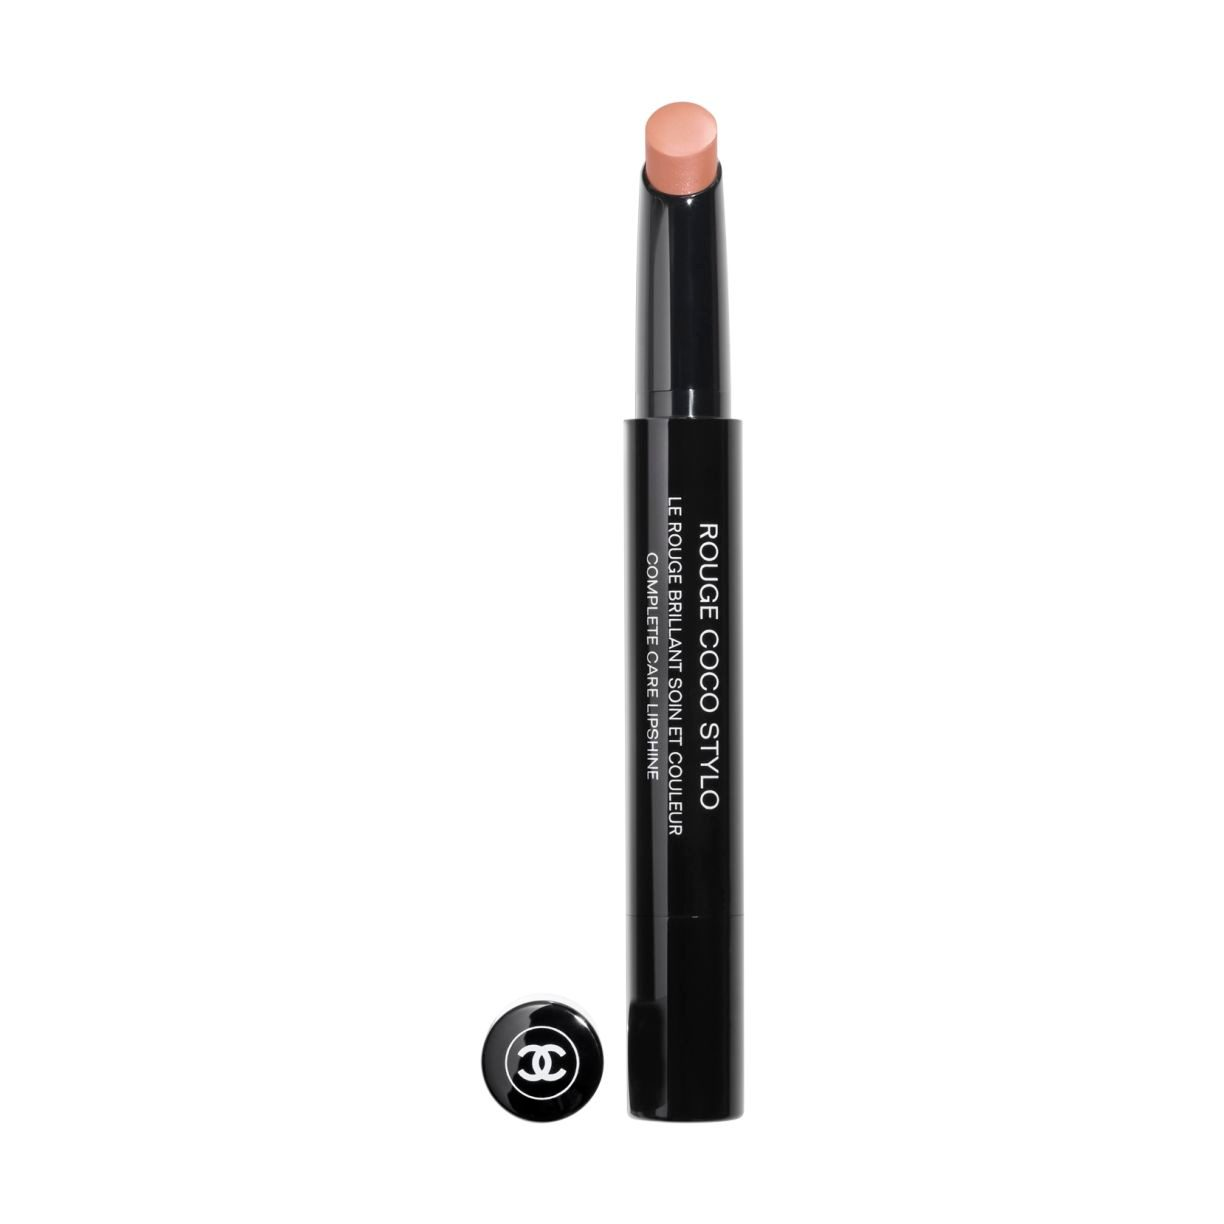 ROUGE COCO STYLO COMPLETE CARE LIPSHINE